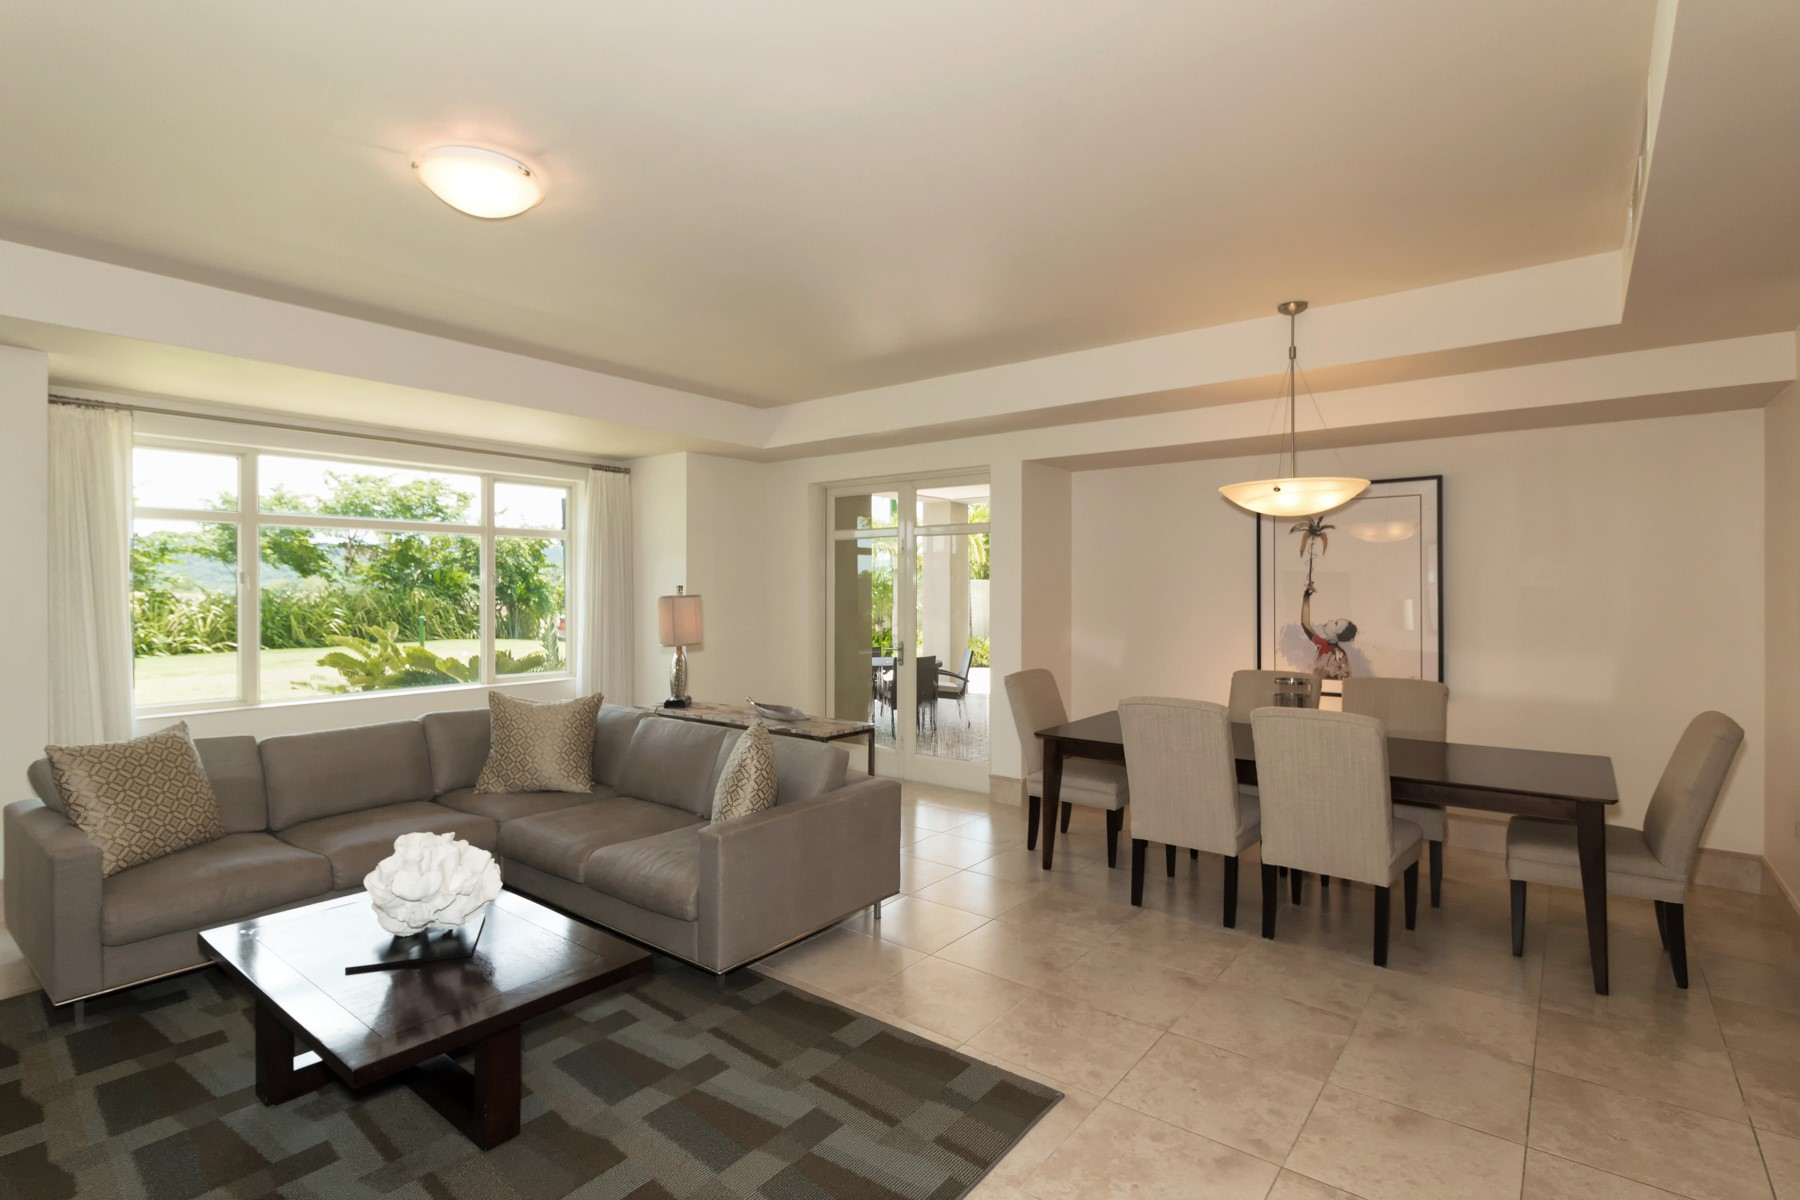 Additional photo for property listing at Plantation Village Spacious Ground Floor Residence 500 Plantation Drive Building 3, Apt 100 Dorado Beach, Puerto Rico 00646 プエルトリコ